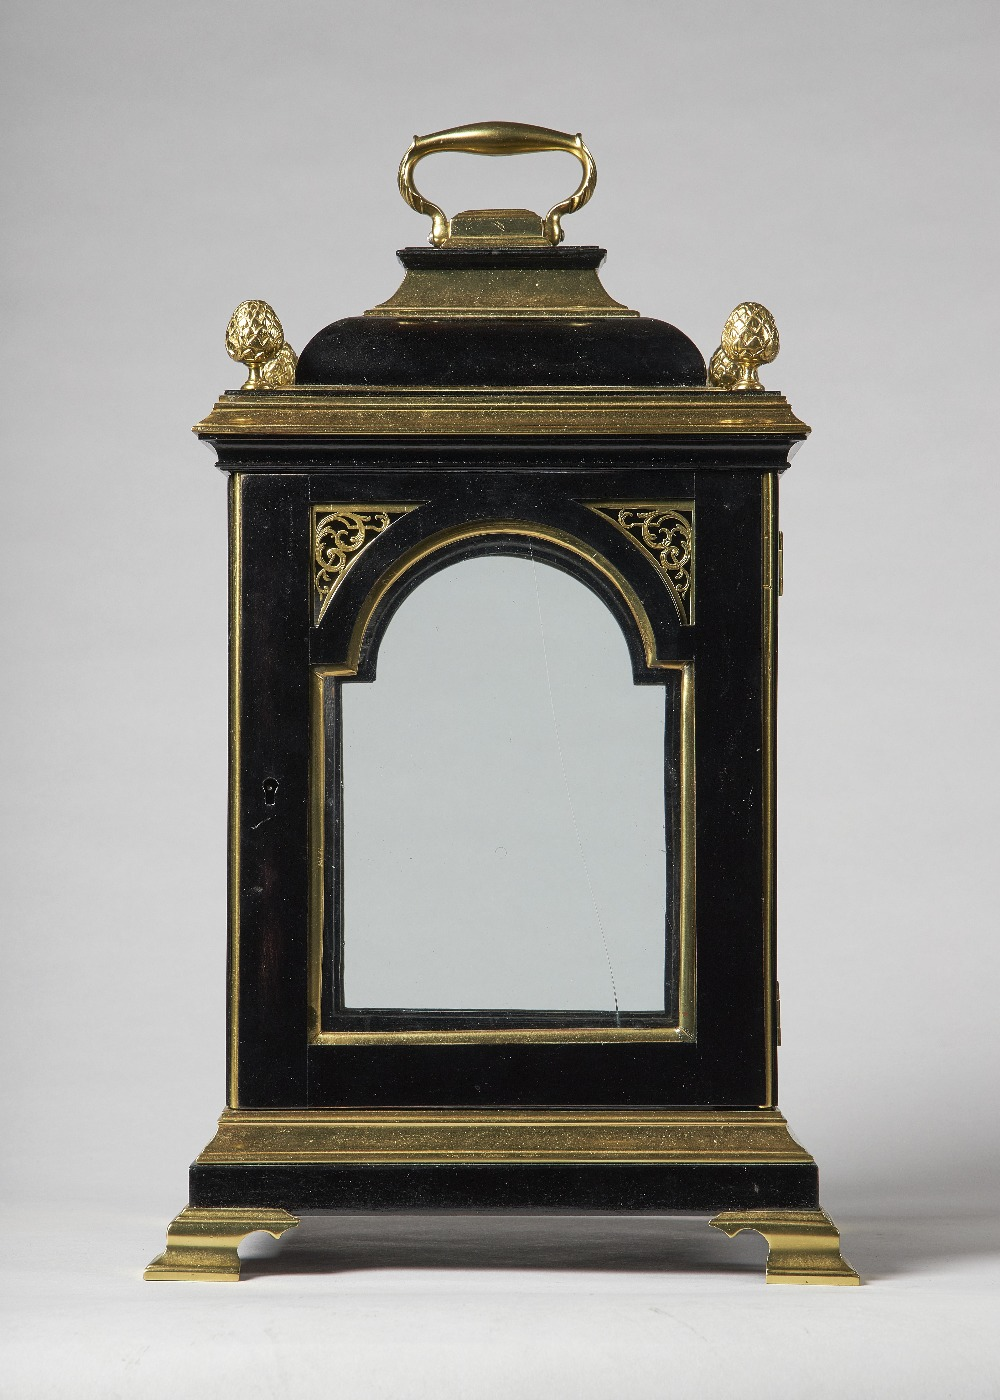 Lot 655 - A gilt brass-mounted inverted bell-top bracket clock case In the George III style incorporating